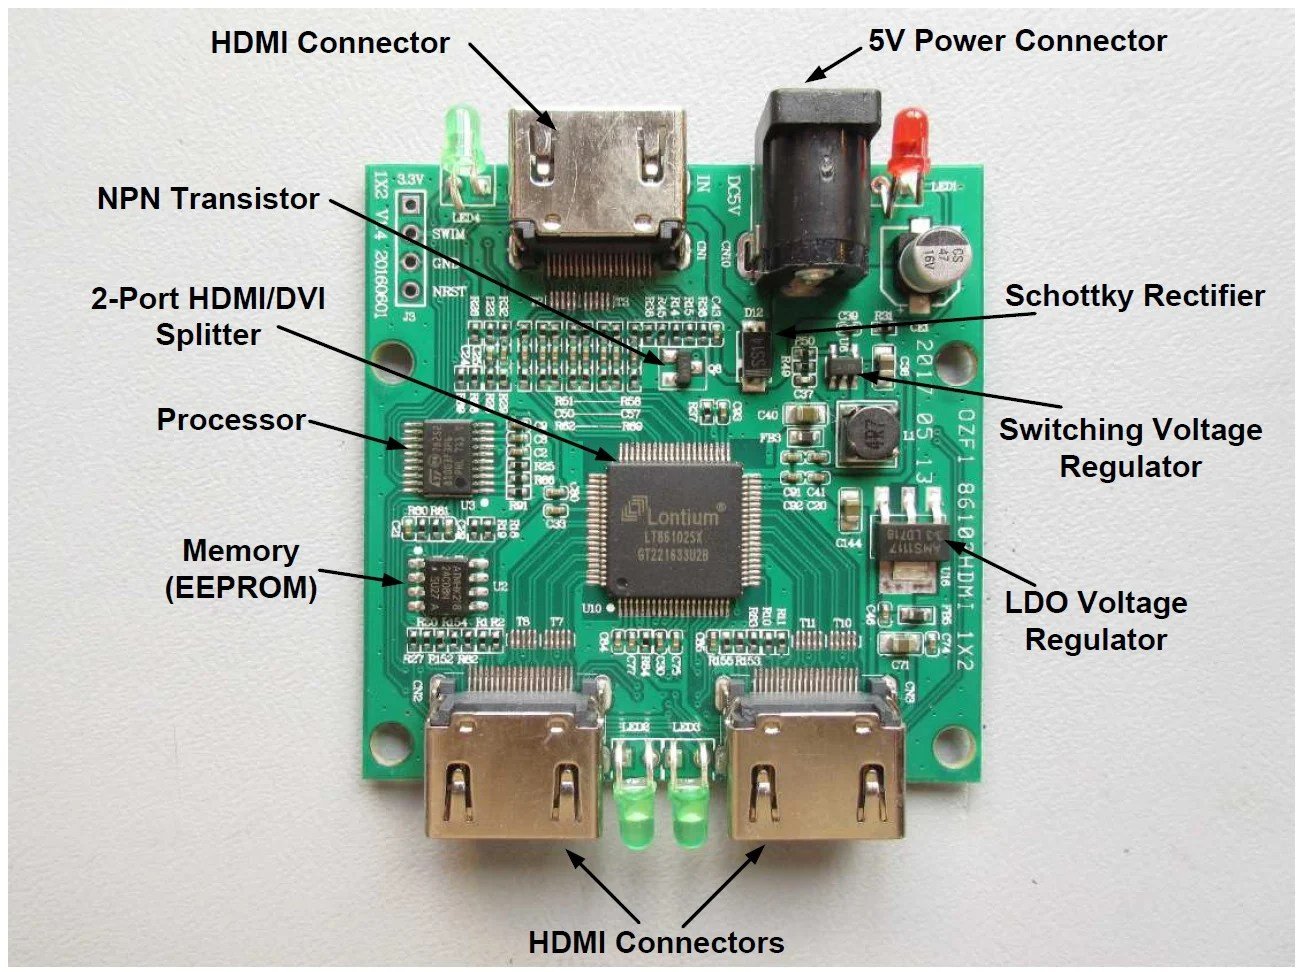 hight resolution of wrg 3749 hdmi splitter wiring diagram a single sided design meaning that components are